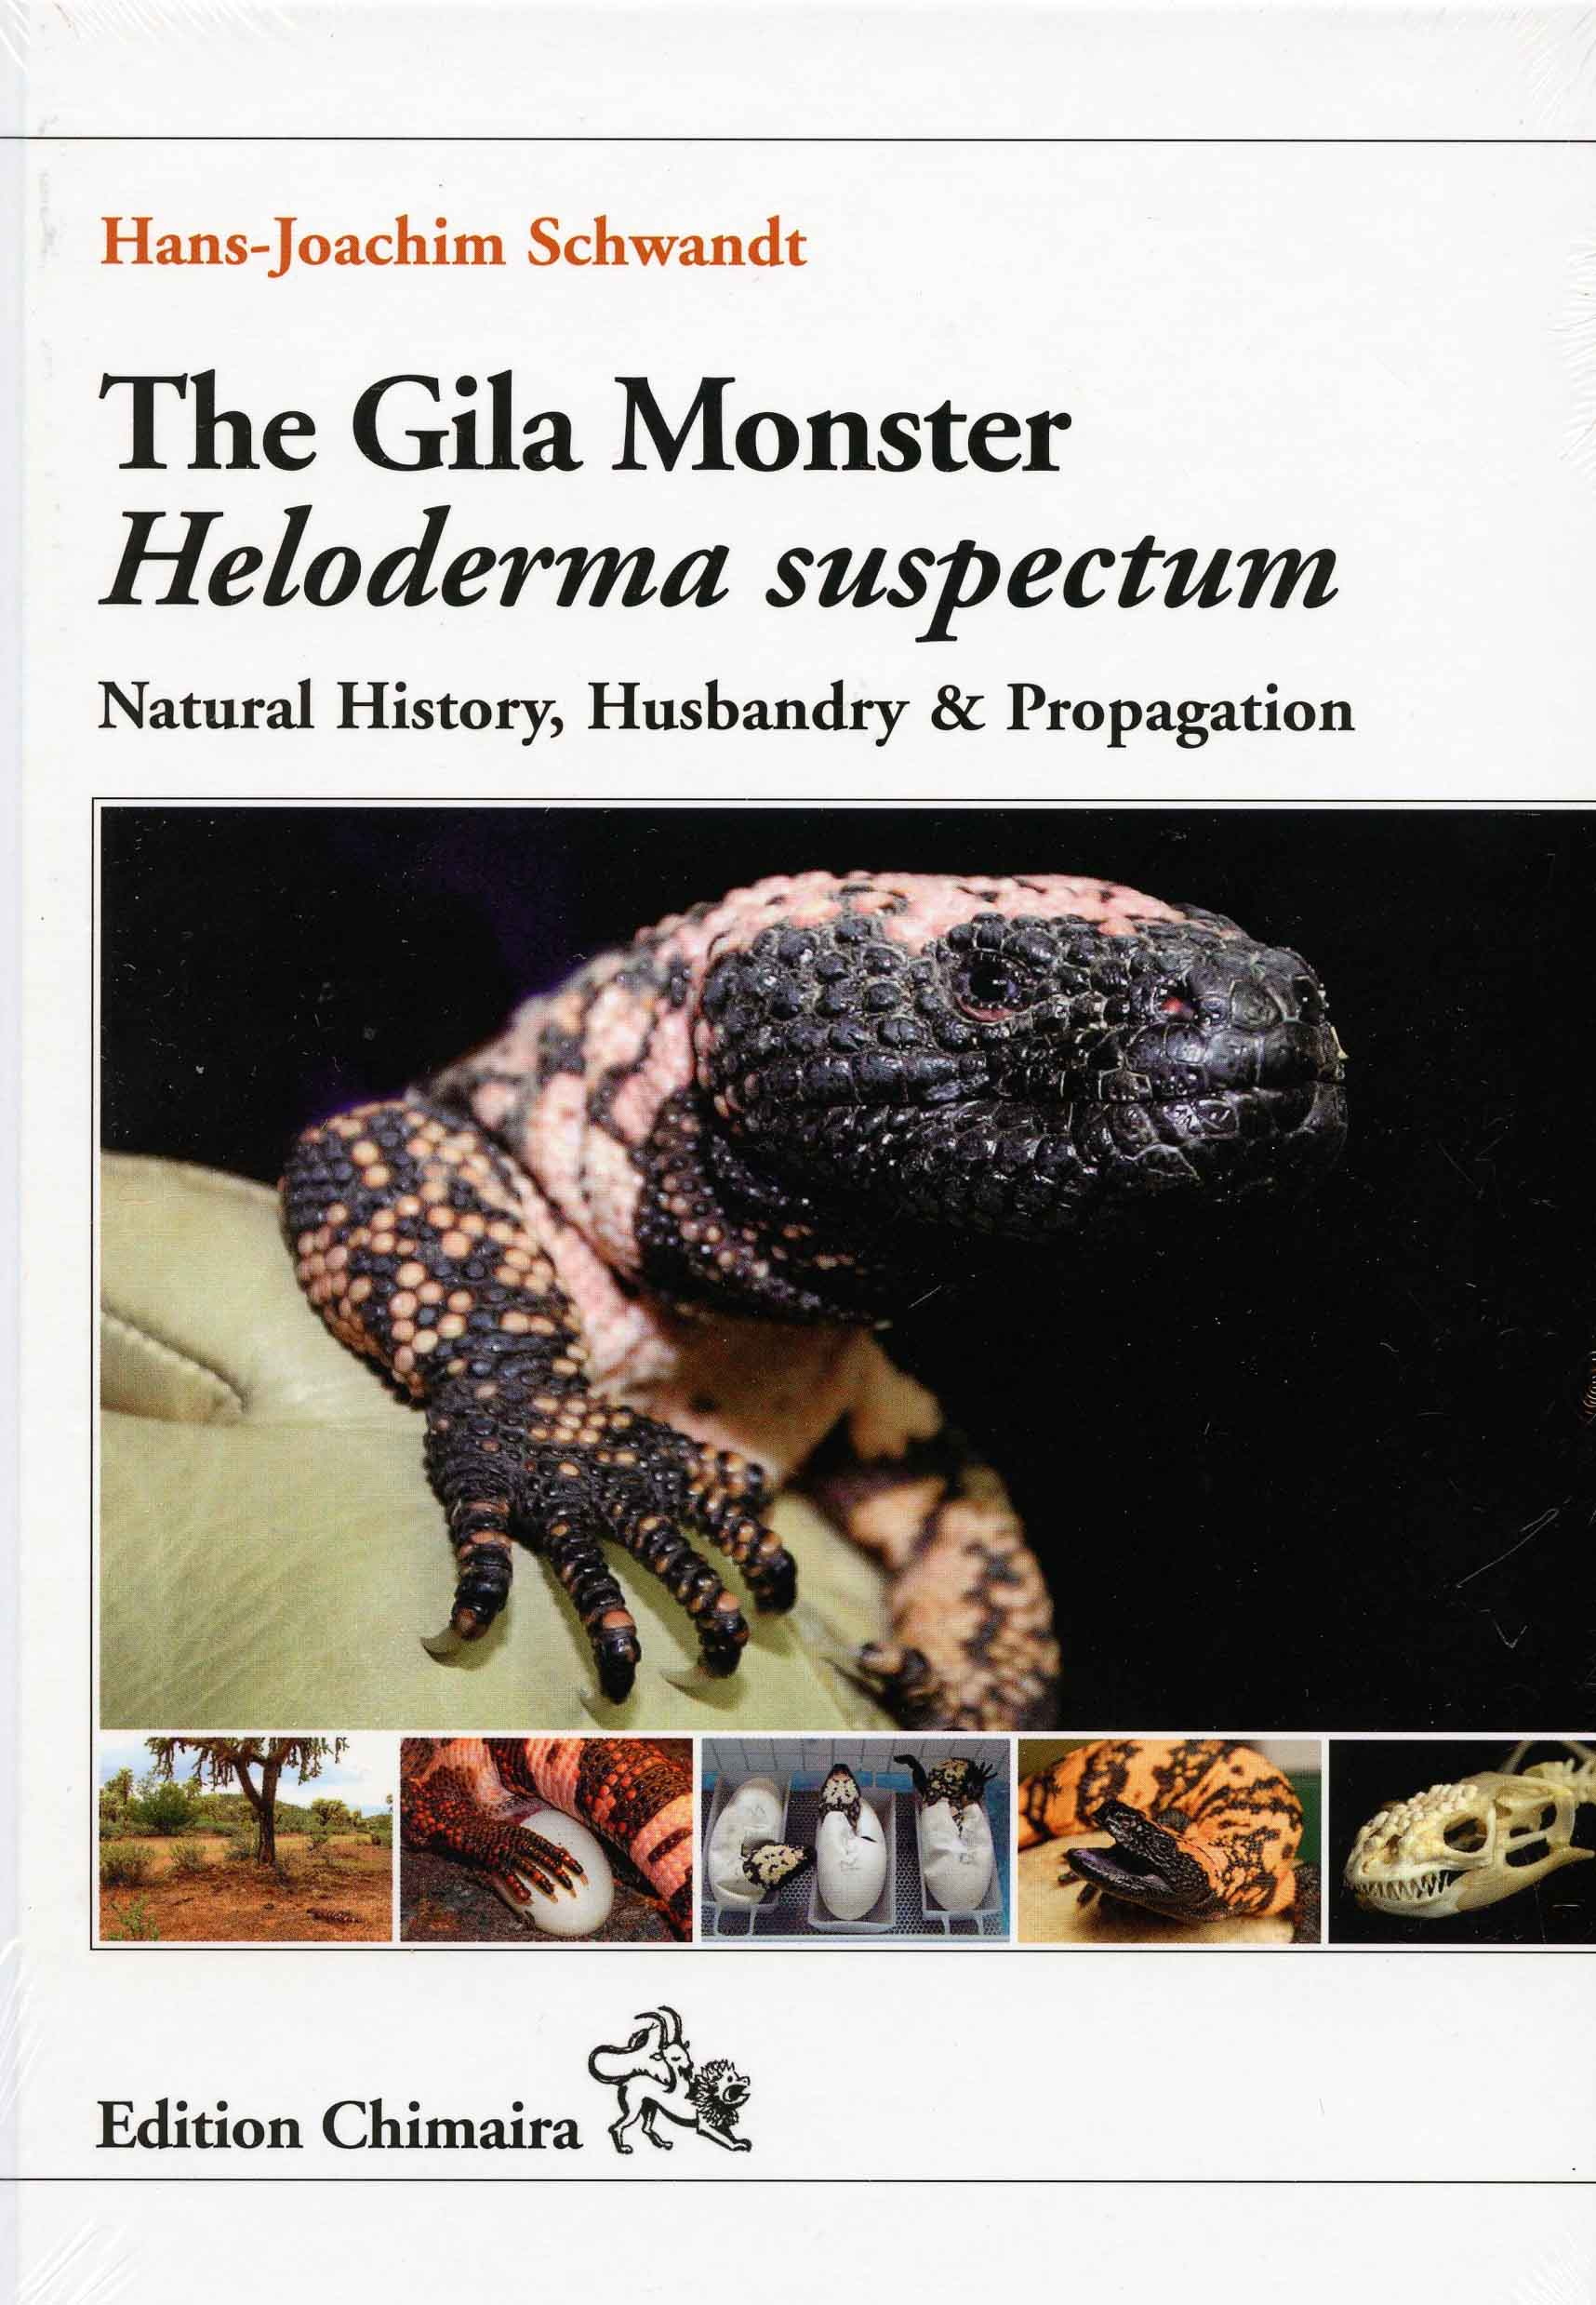 Image for The Gila Monster Heloderma suspectum: Natural History, Husbandry & Propagation.